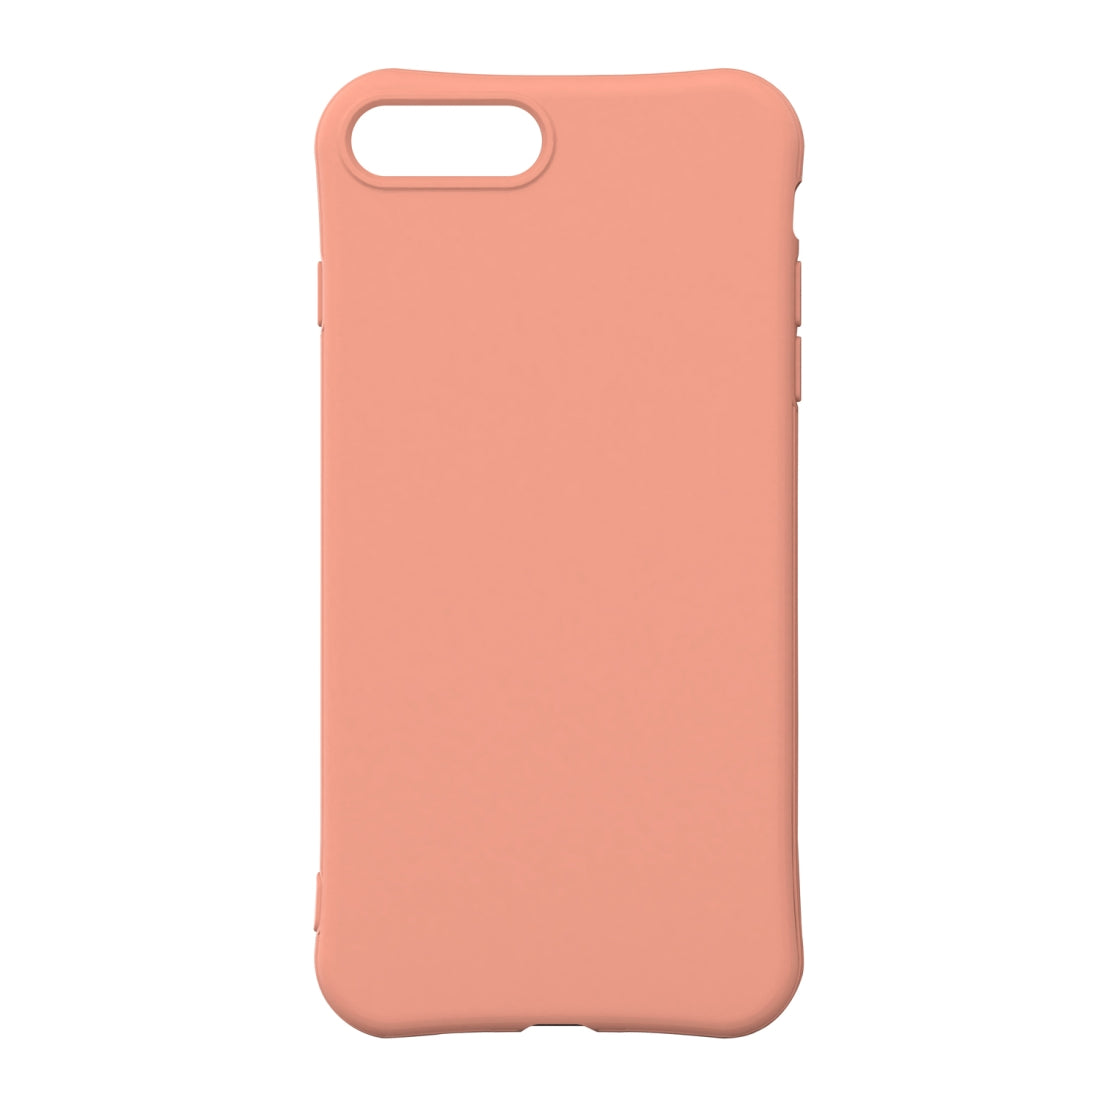 For iPhone 8 Plus / iPhone 7 Plus ENKAY ENK-PC008 Solid Color TPU Slim Case Cover(Pink)